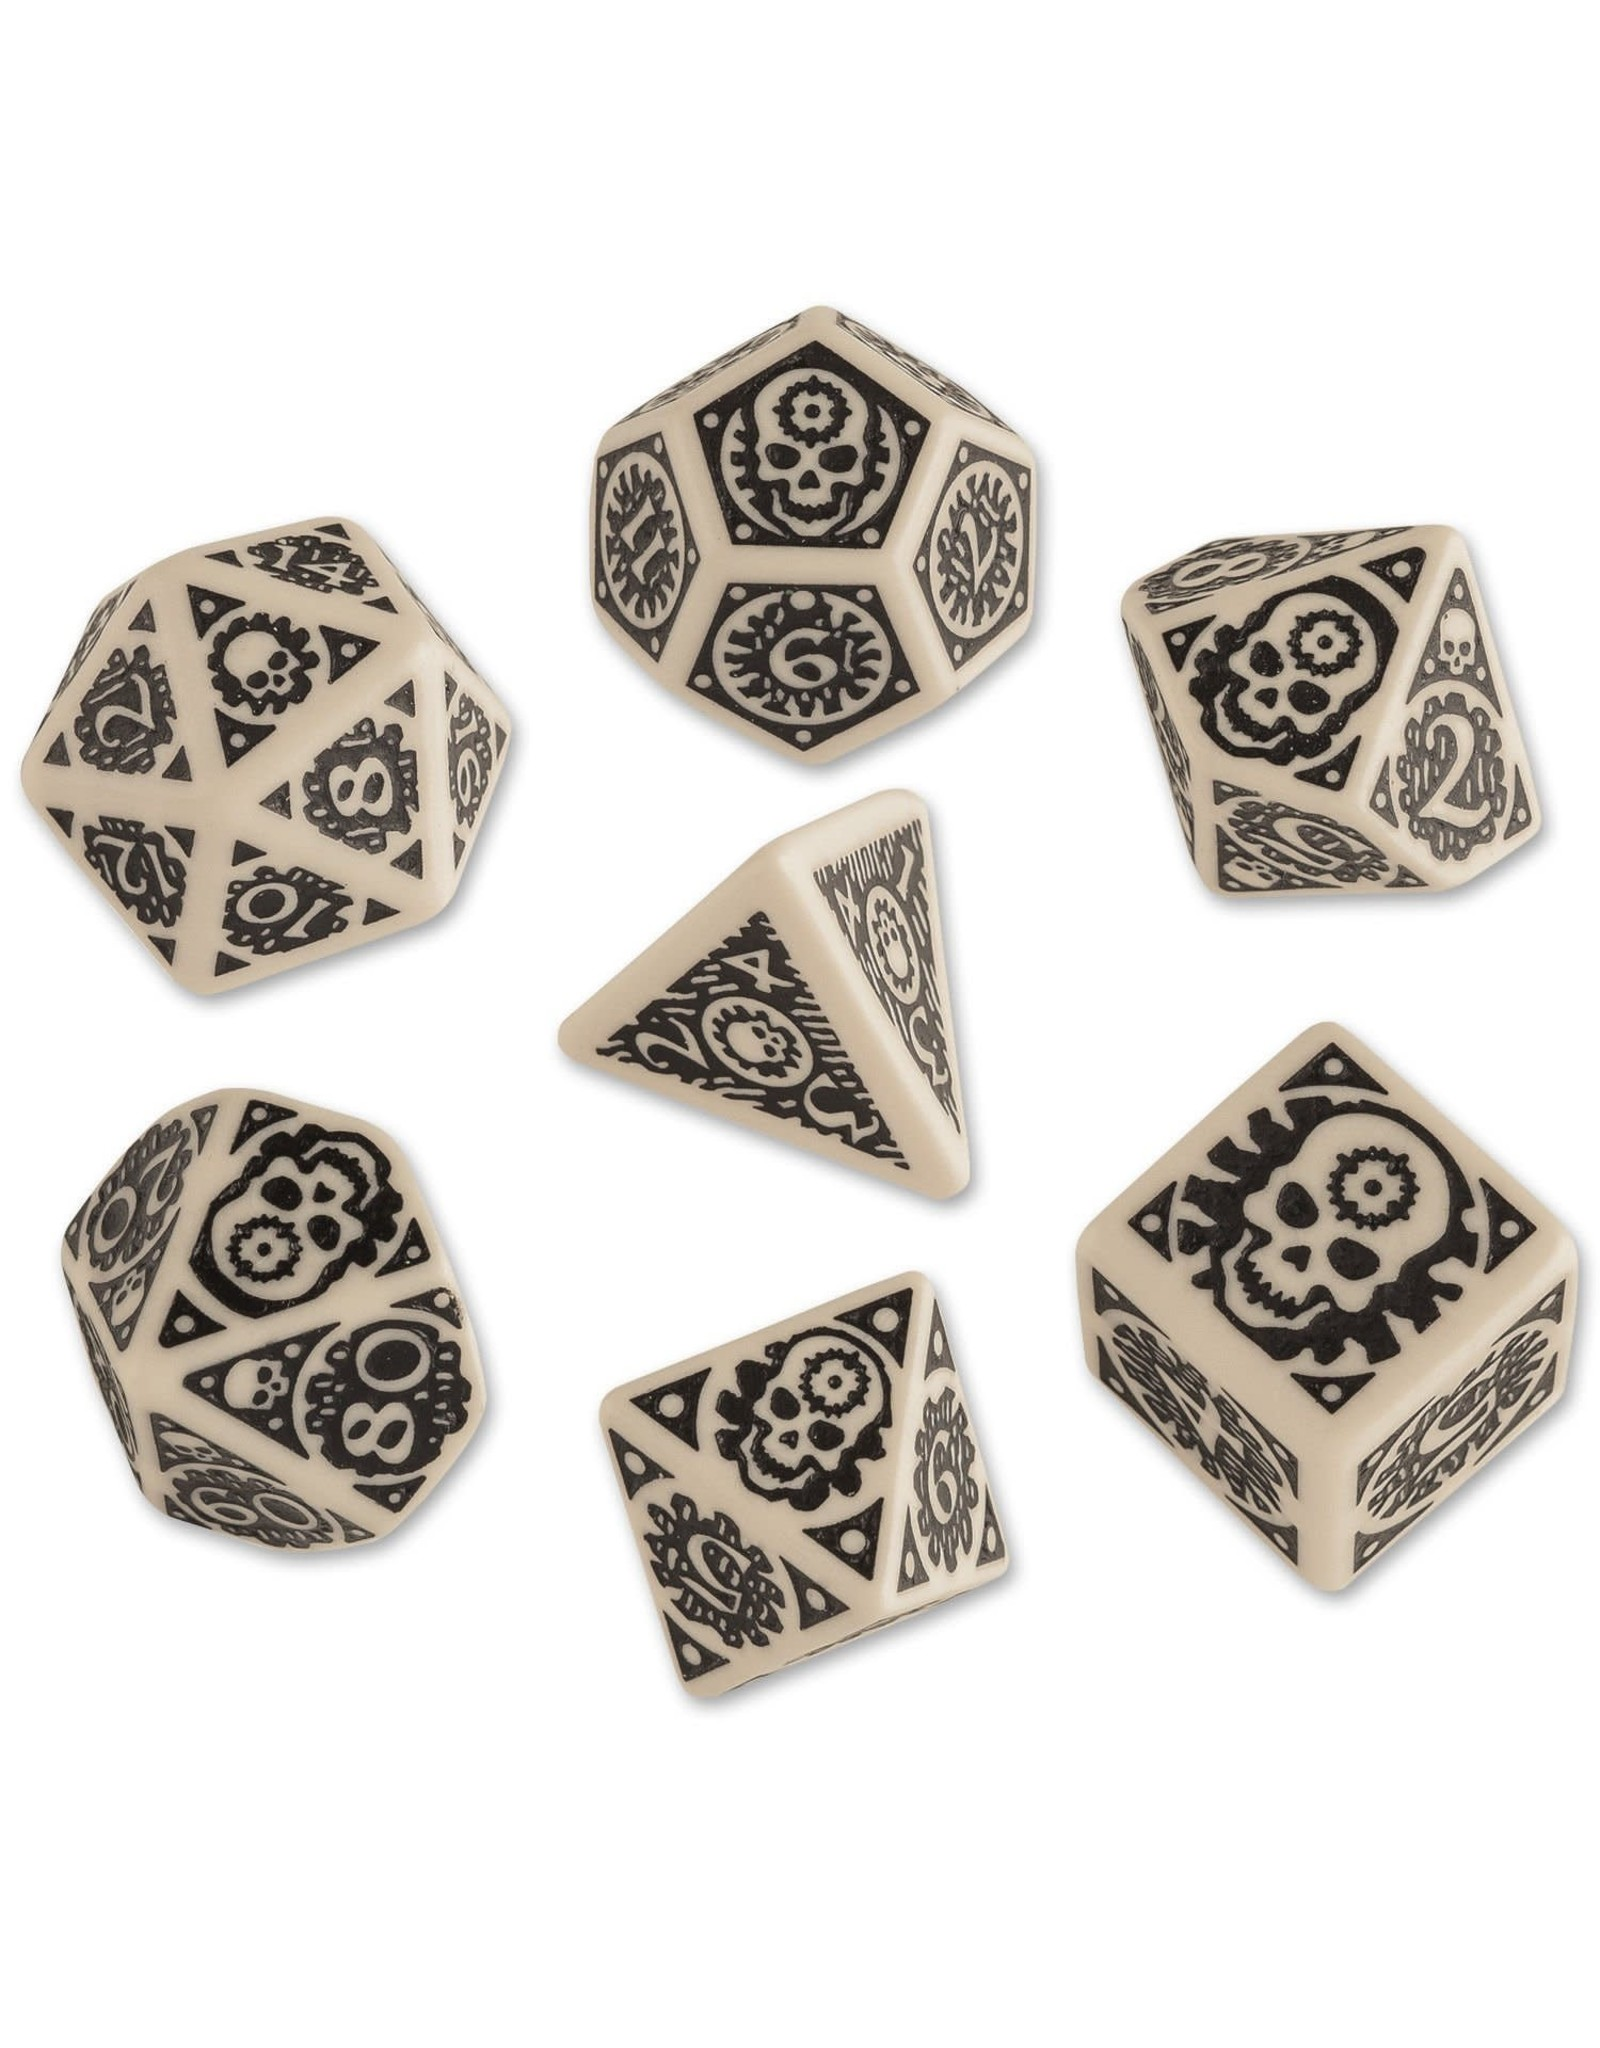 ADVENTURES IN THE EAST MARK RPG DICE SET 7PC